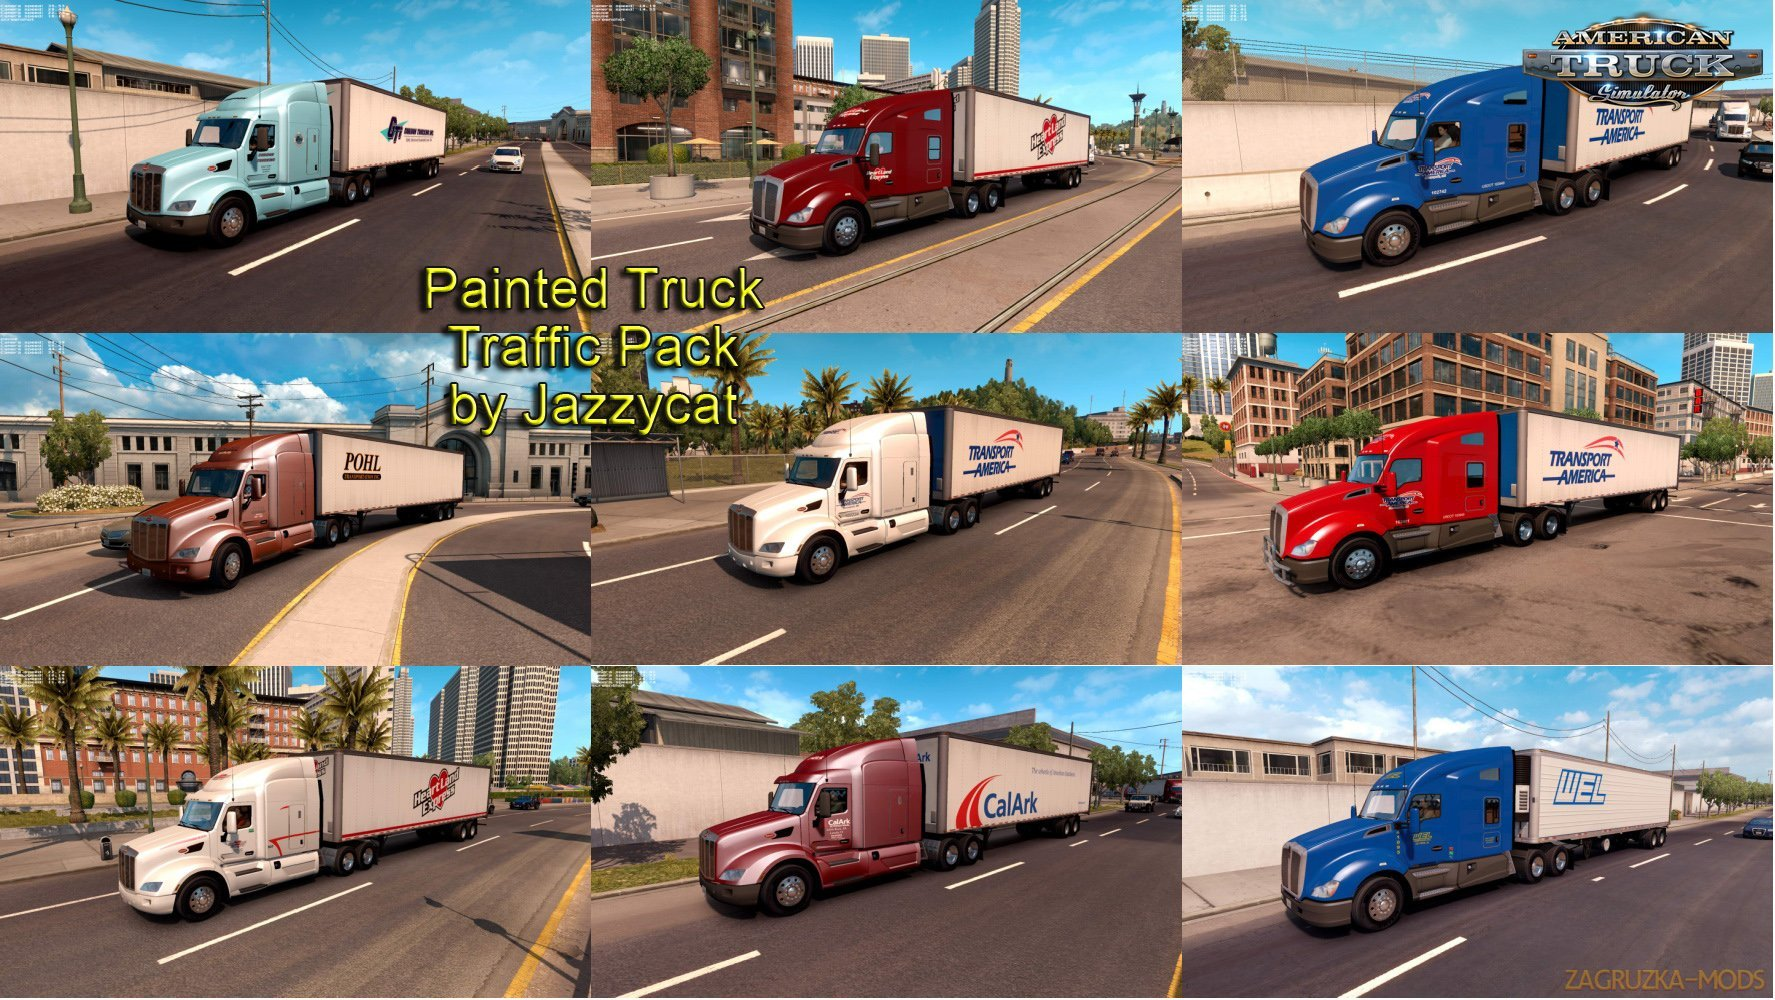 Painted Truck and Trailers Traffic Pack v1.2 by Jazzycat